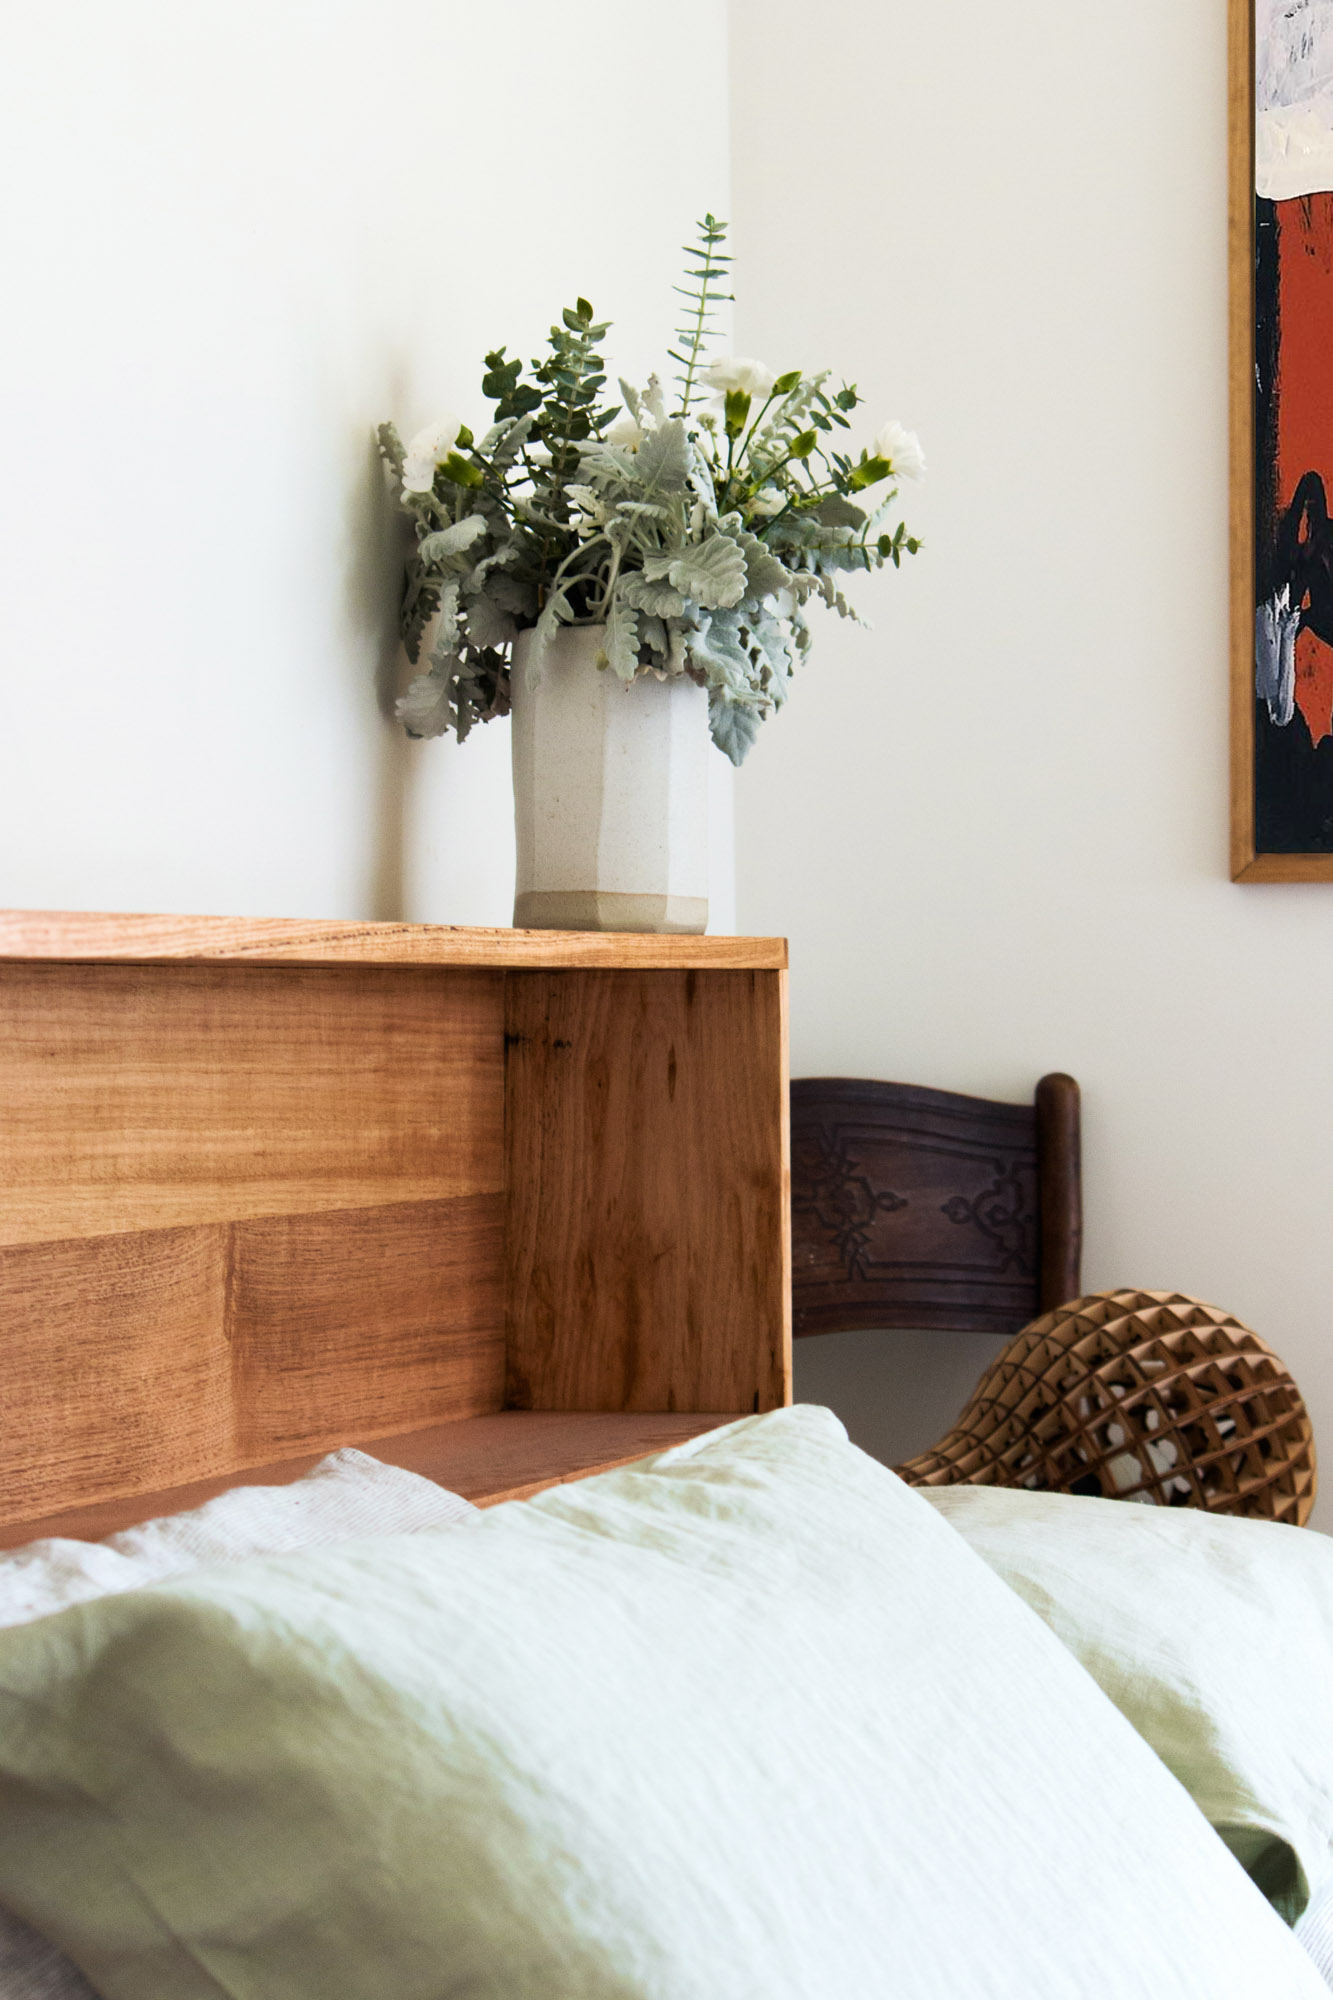 Al and Imo Handmade - Bookshelf Bedhead Platform Bed - Custom made from recycled timber - Australia - Melbourne - Surf Coast-25.jpg